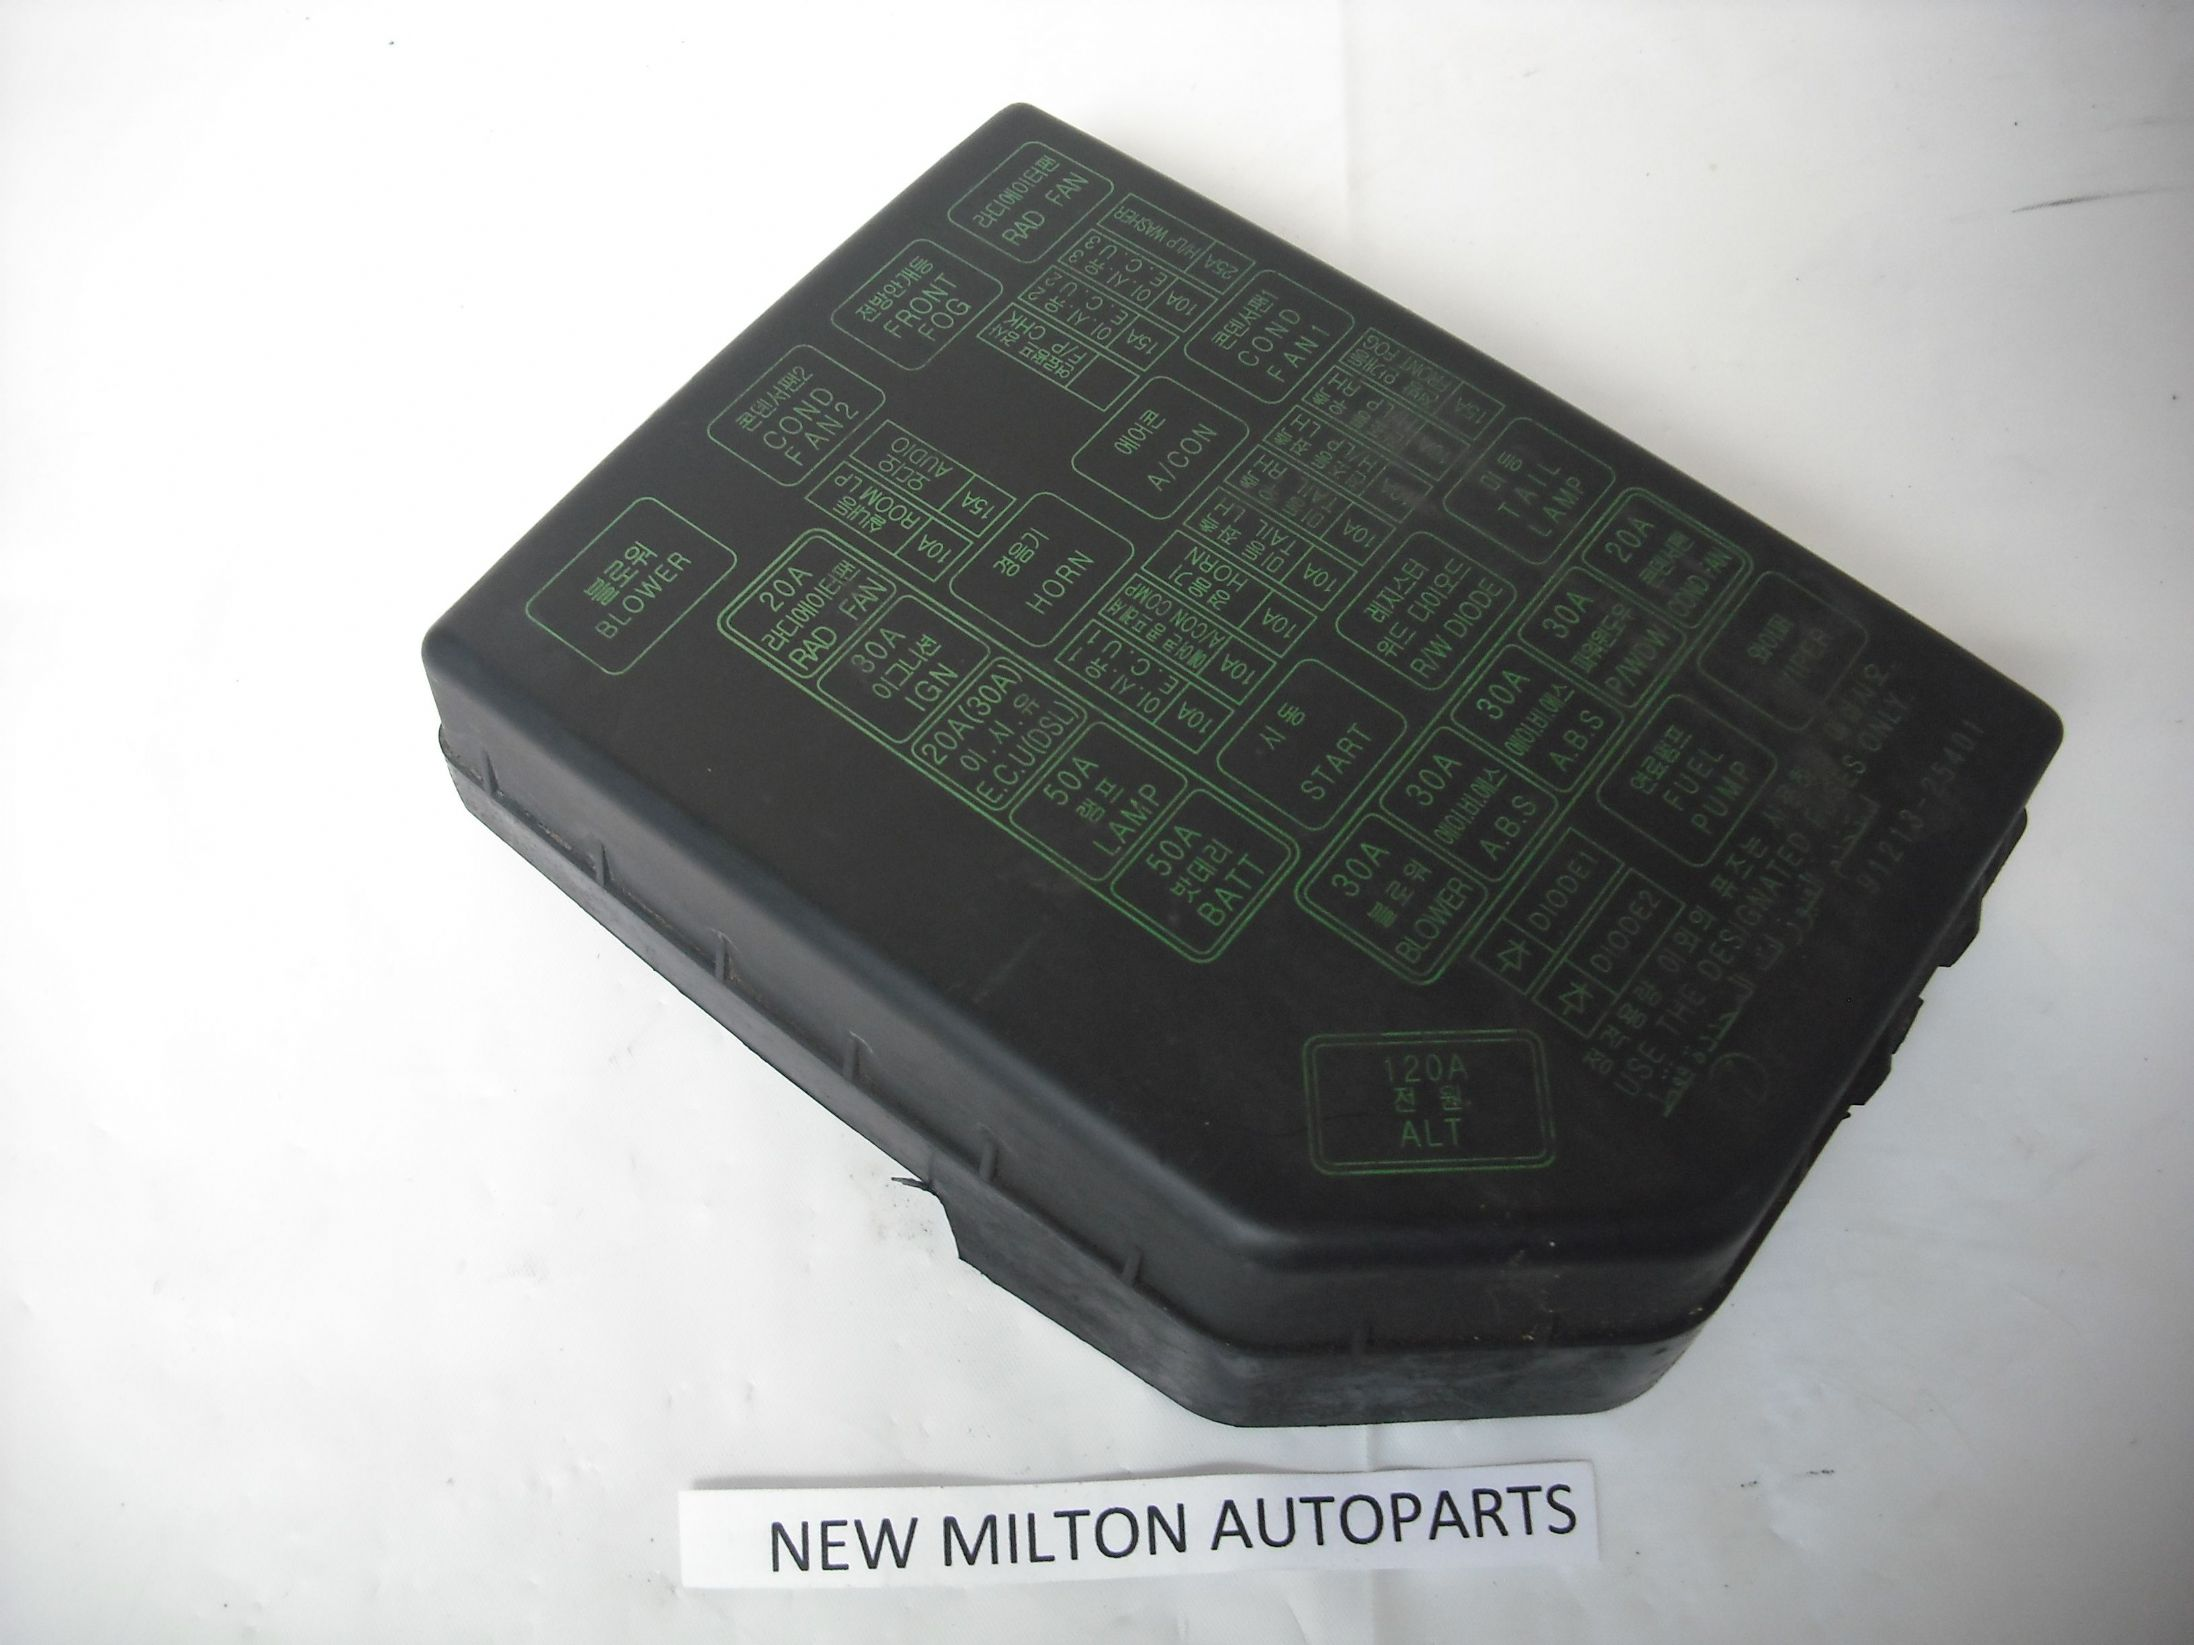 HYUNDAI ACCENT 2000-2003 FUSE BOX LID COVER